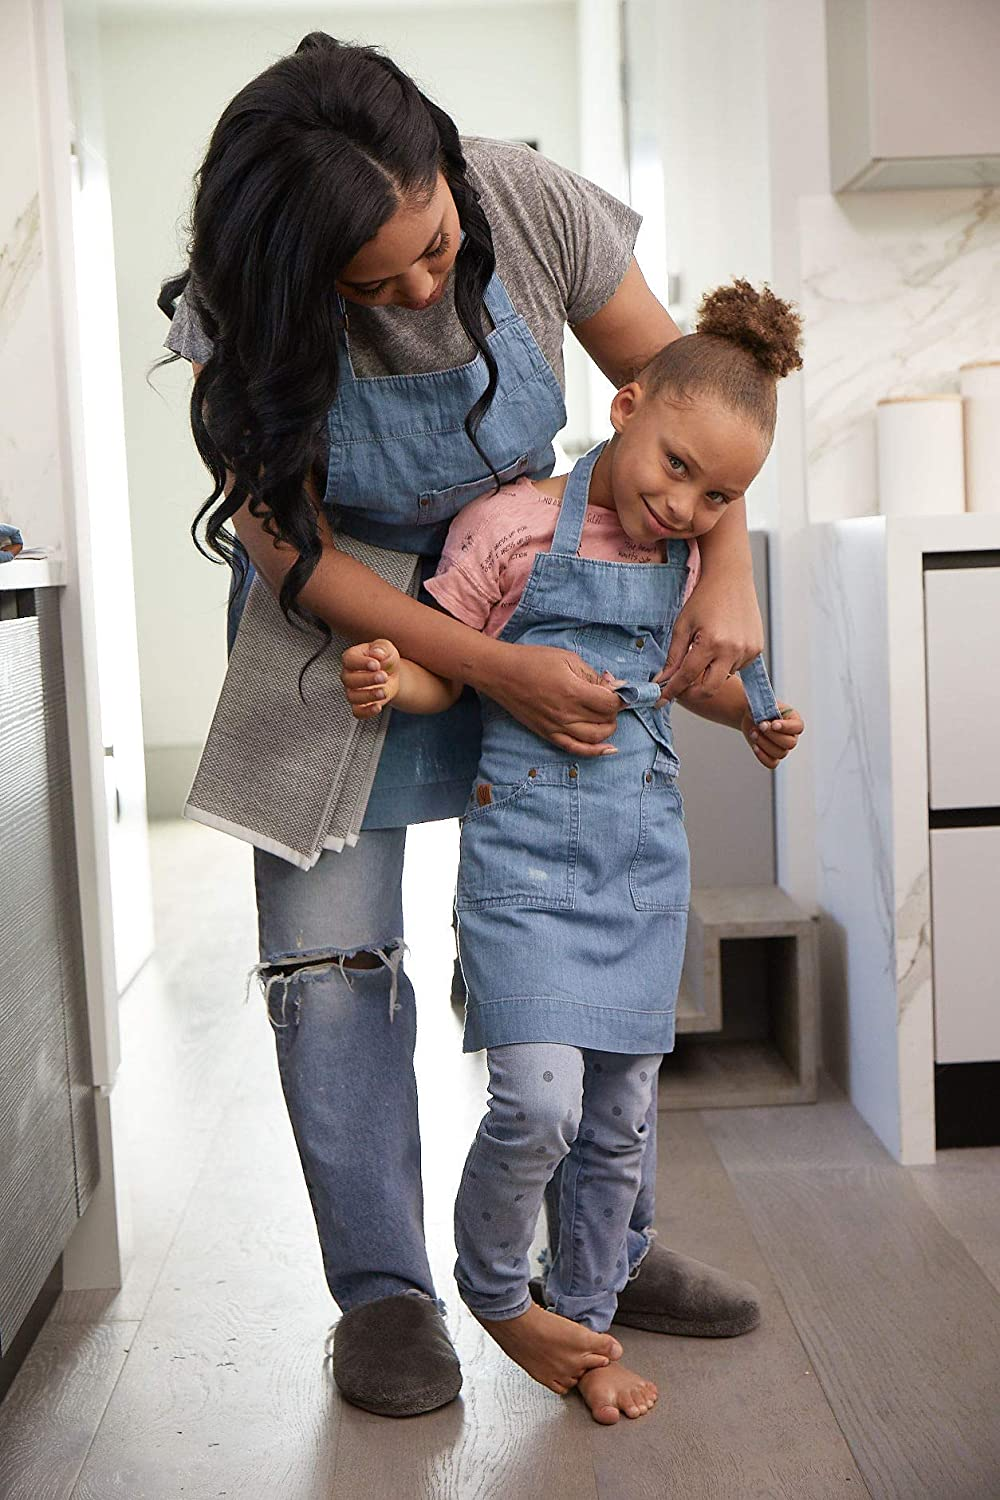 Aqua Garden Kaf Home Ayesha Curry Chef Hostess Kid Apron The Art Room Or Anywhere You Interact With Your Toddlers Perfect For Your Kitchen